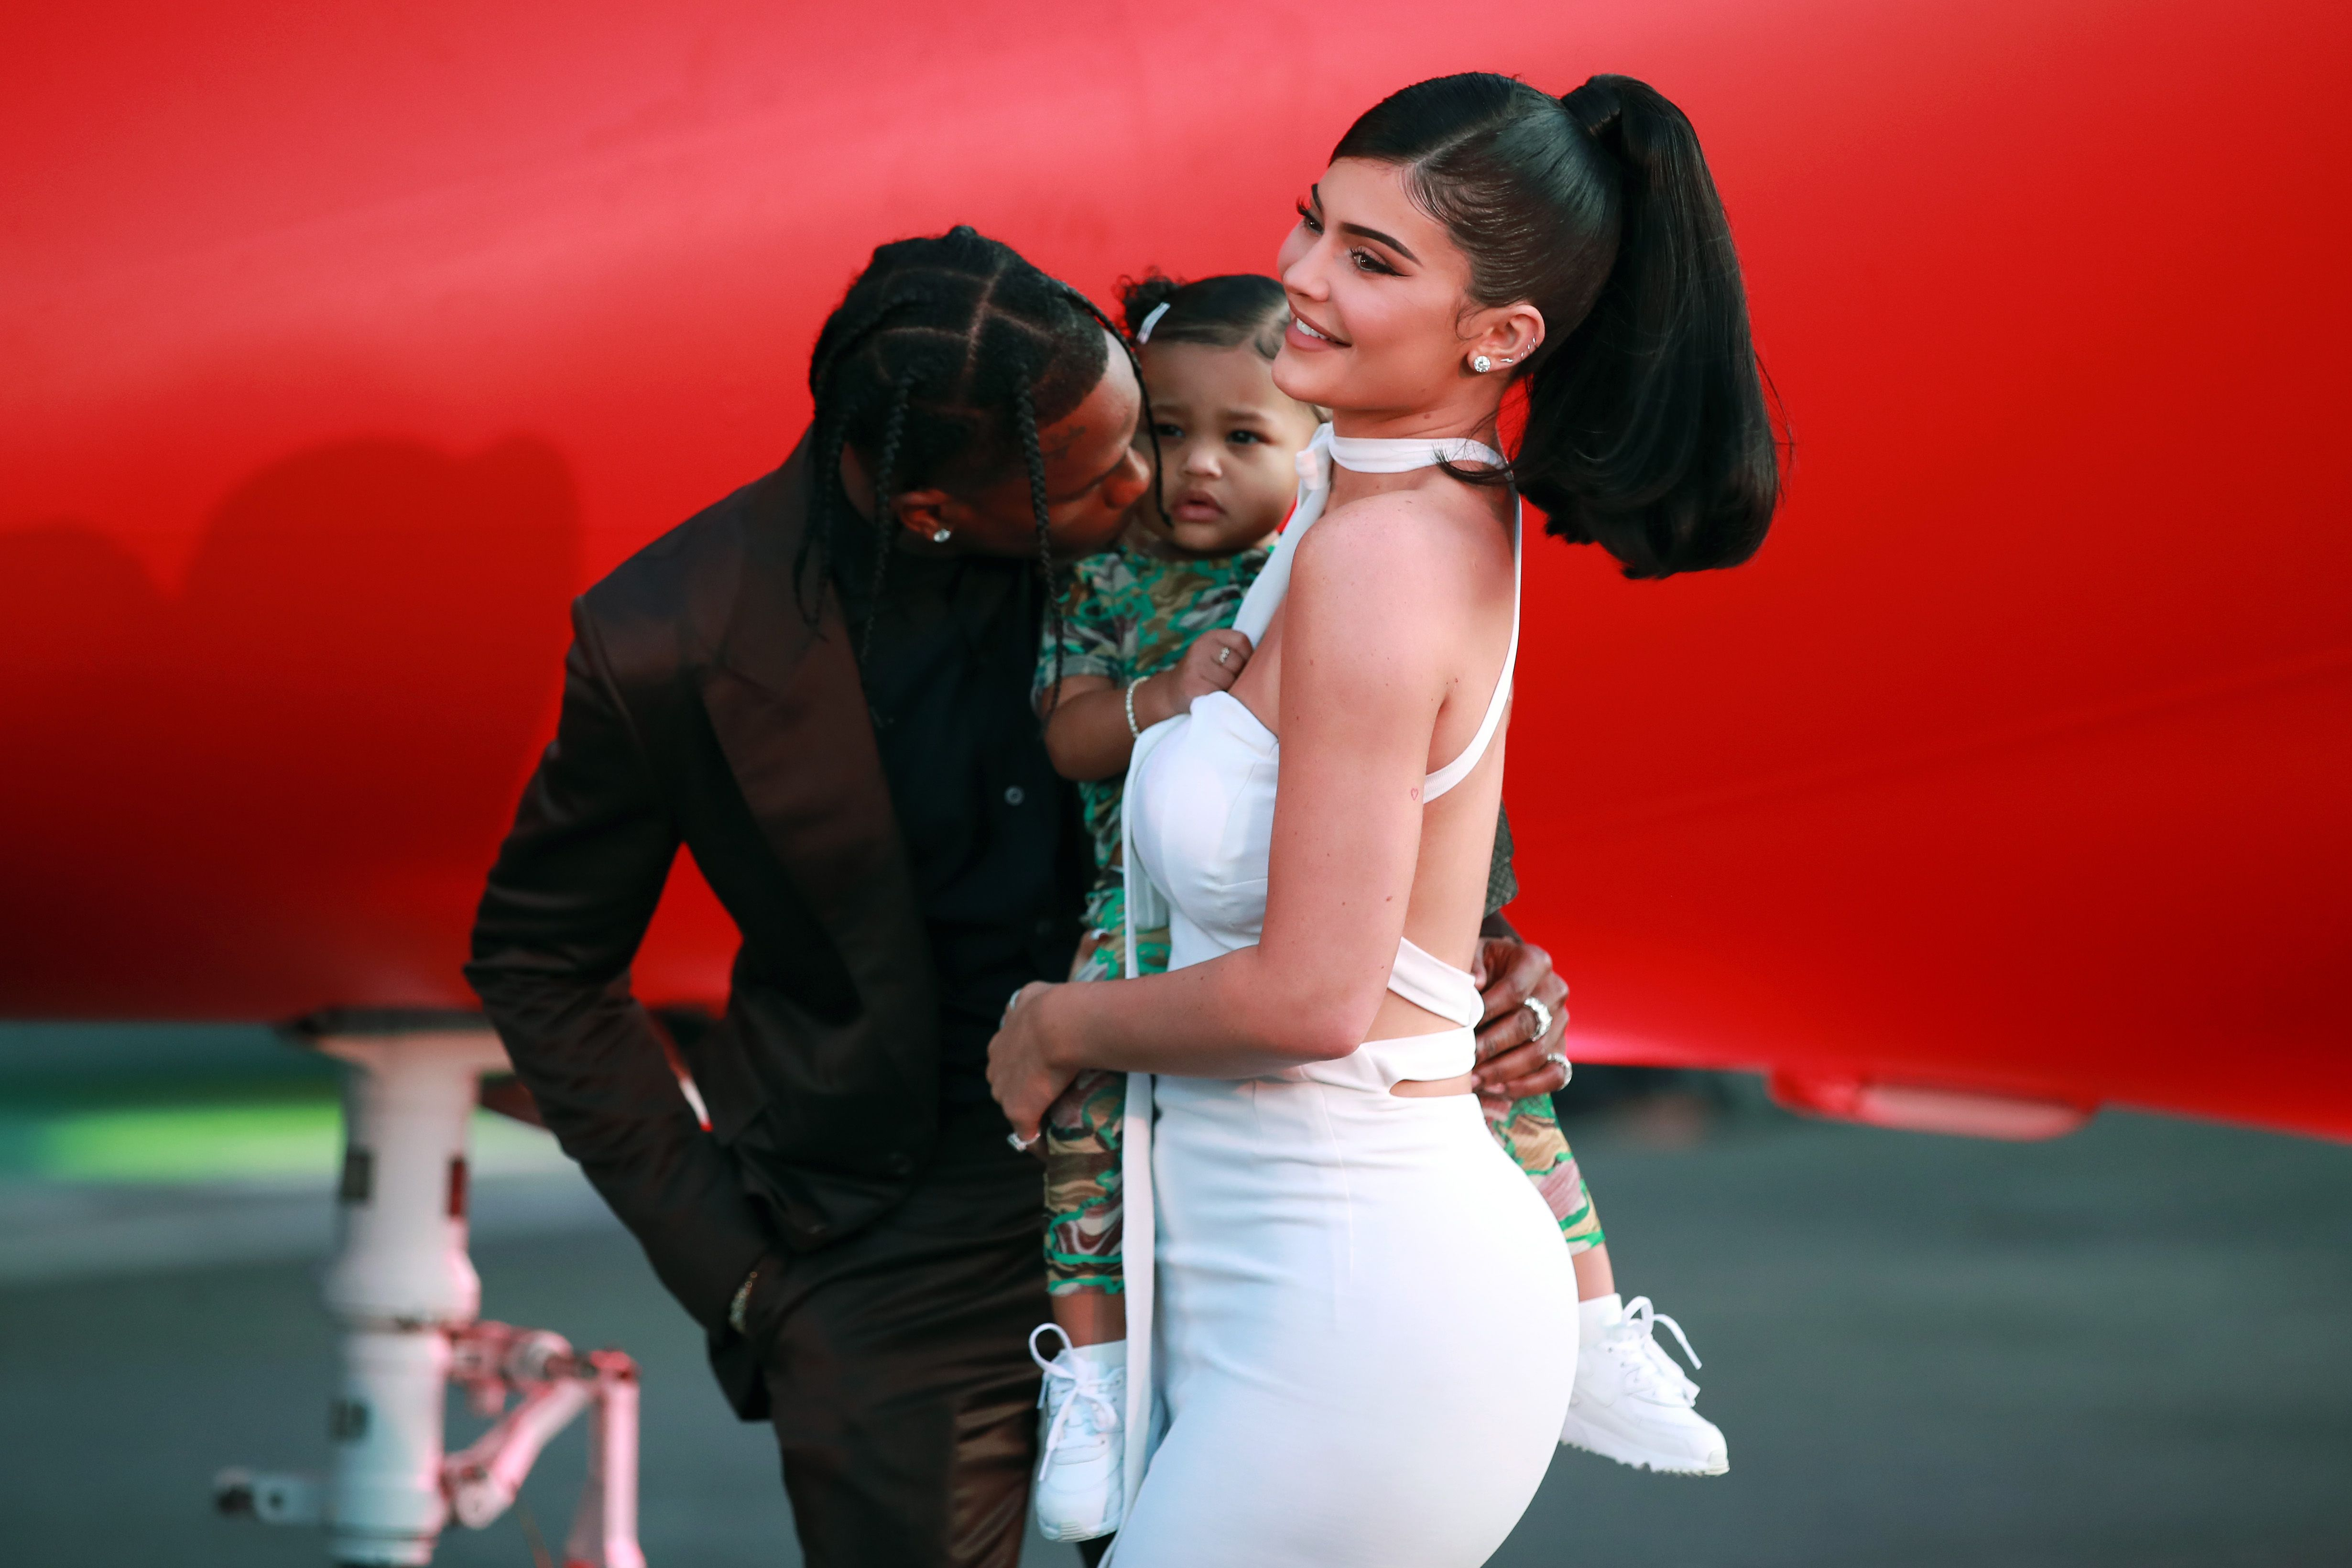 Kylie Jenner Hints At Romantic Reunion With Travis Scott With A Not-So-Subtle Instagram Story